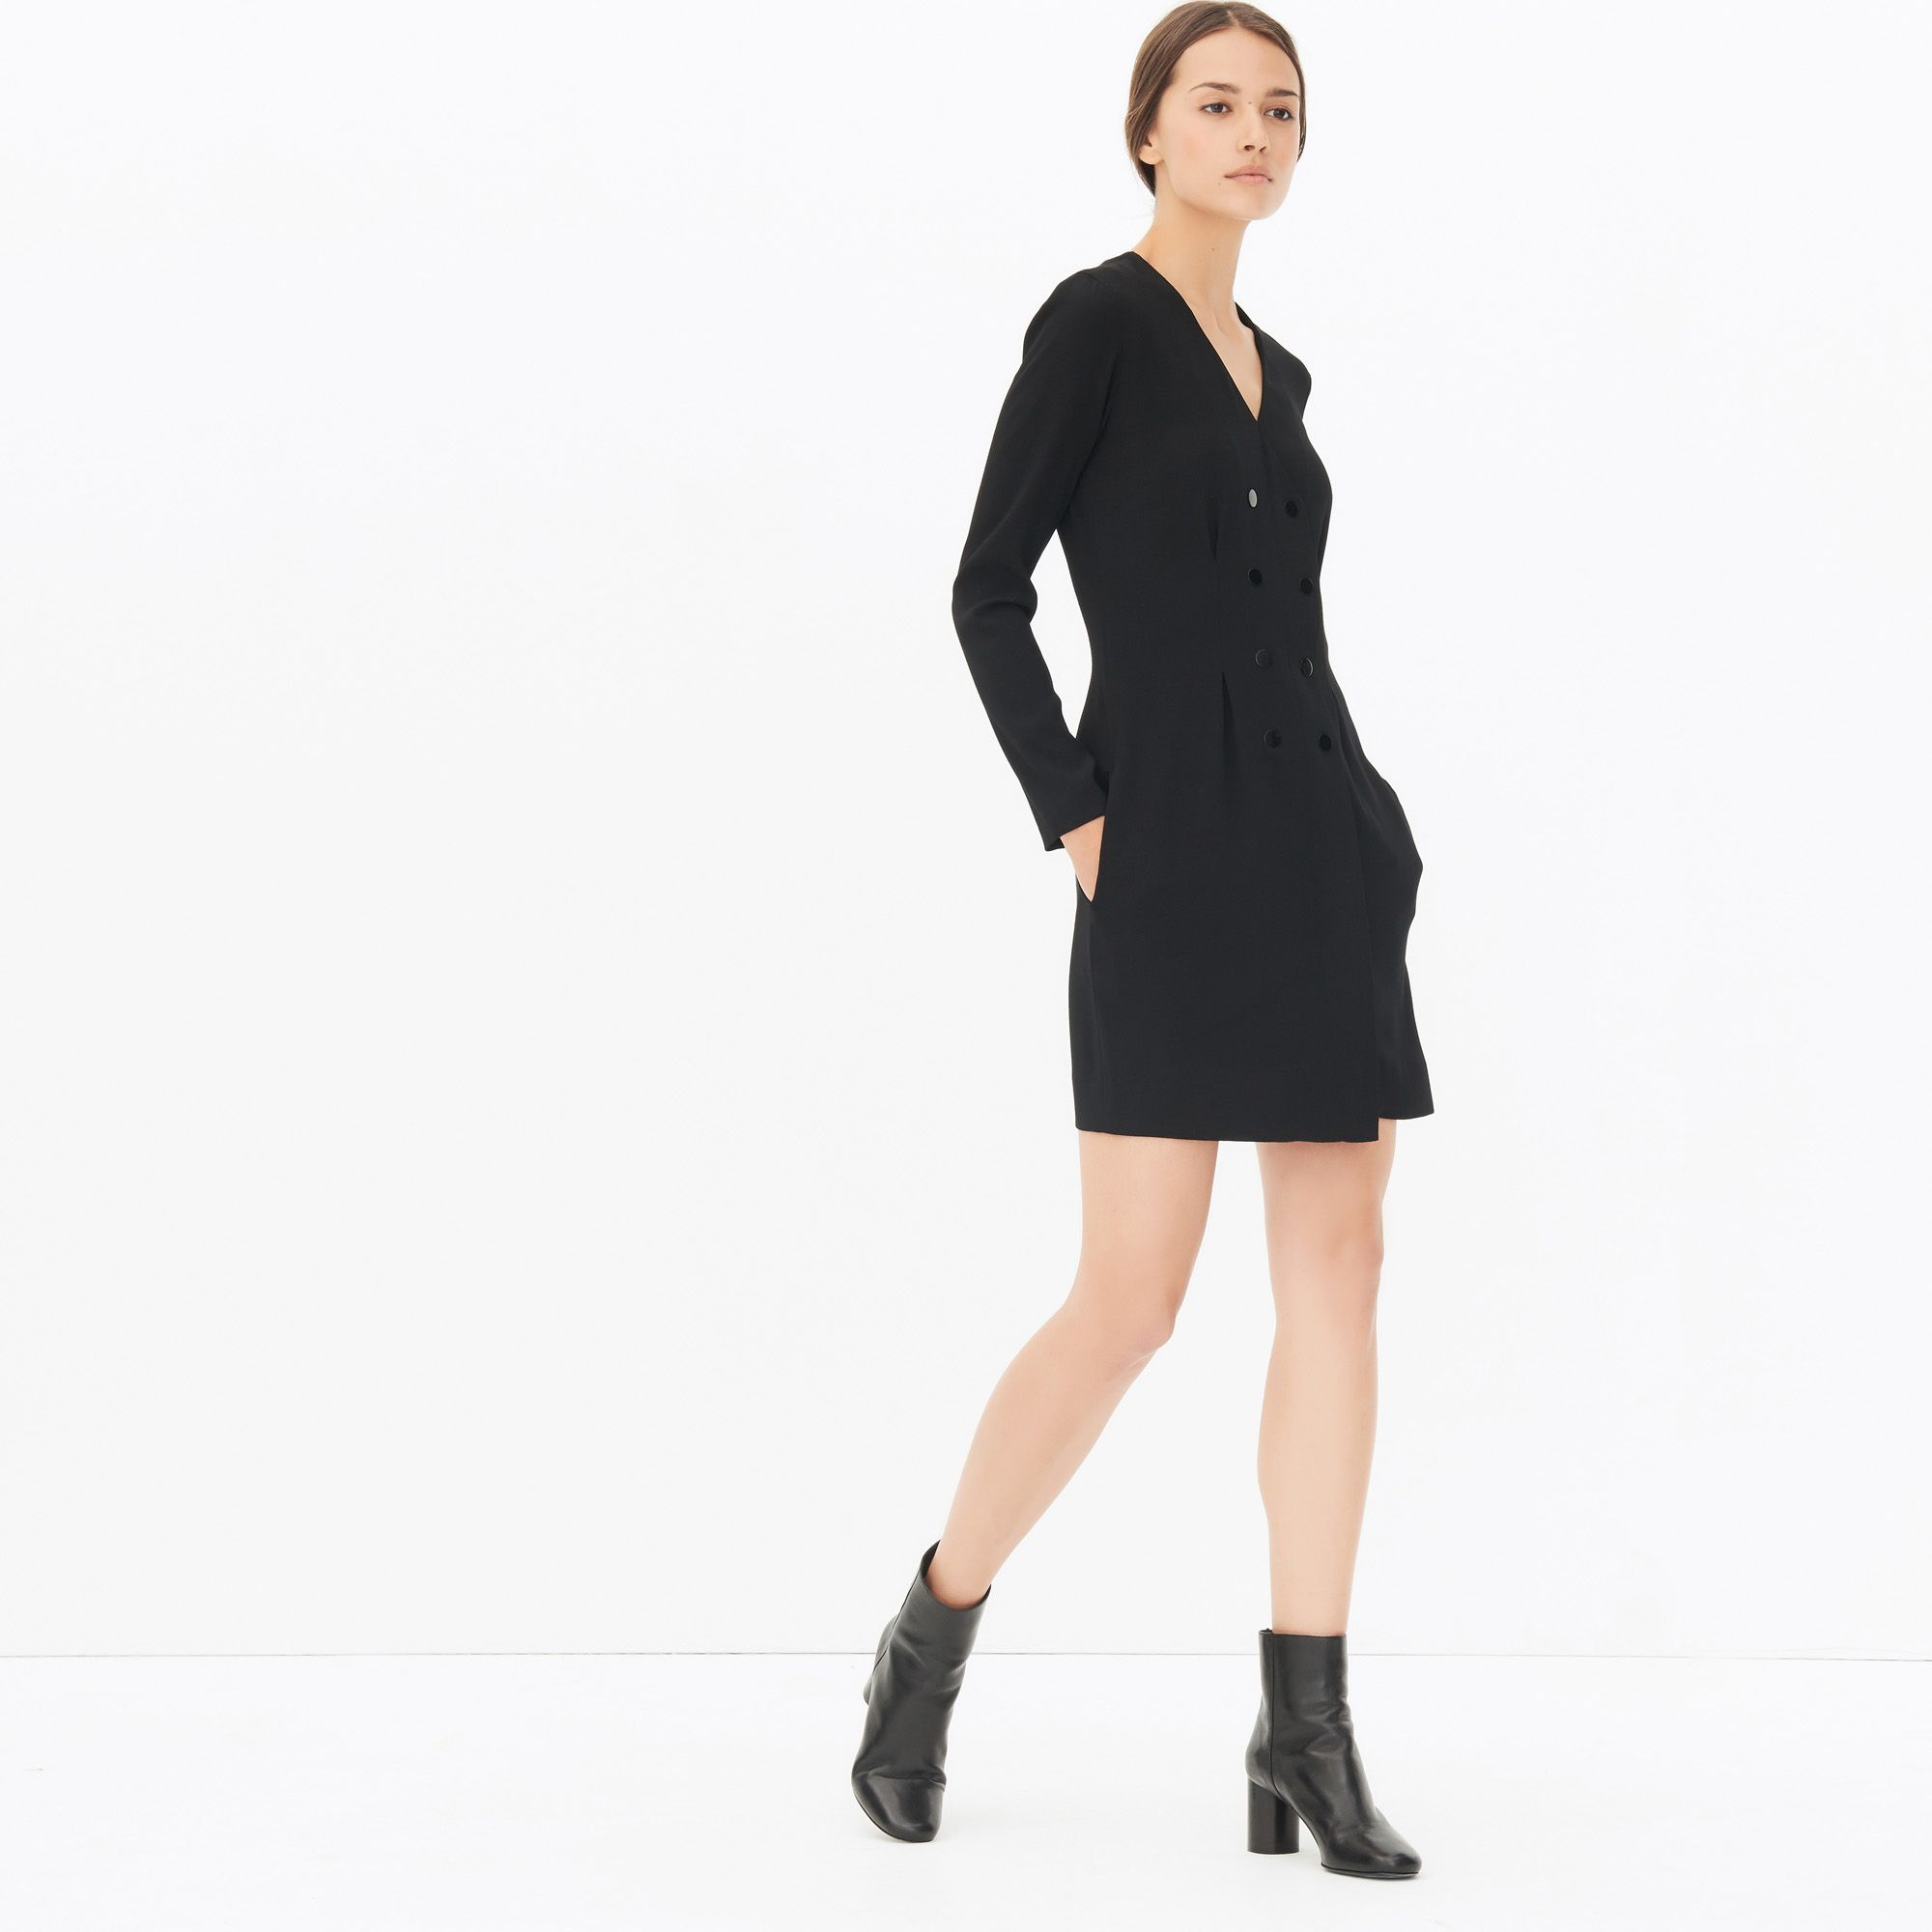 Sandro long dress with long sleeves and V-neck. Double-breasted press-stud fastening. Two pockets with piping. Invisible zip fastening on the side. Simple and chic, this dress is perfect for any occasion. Model is wearing a size 1.